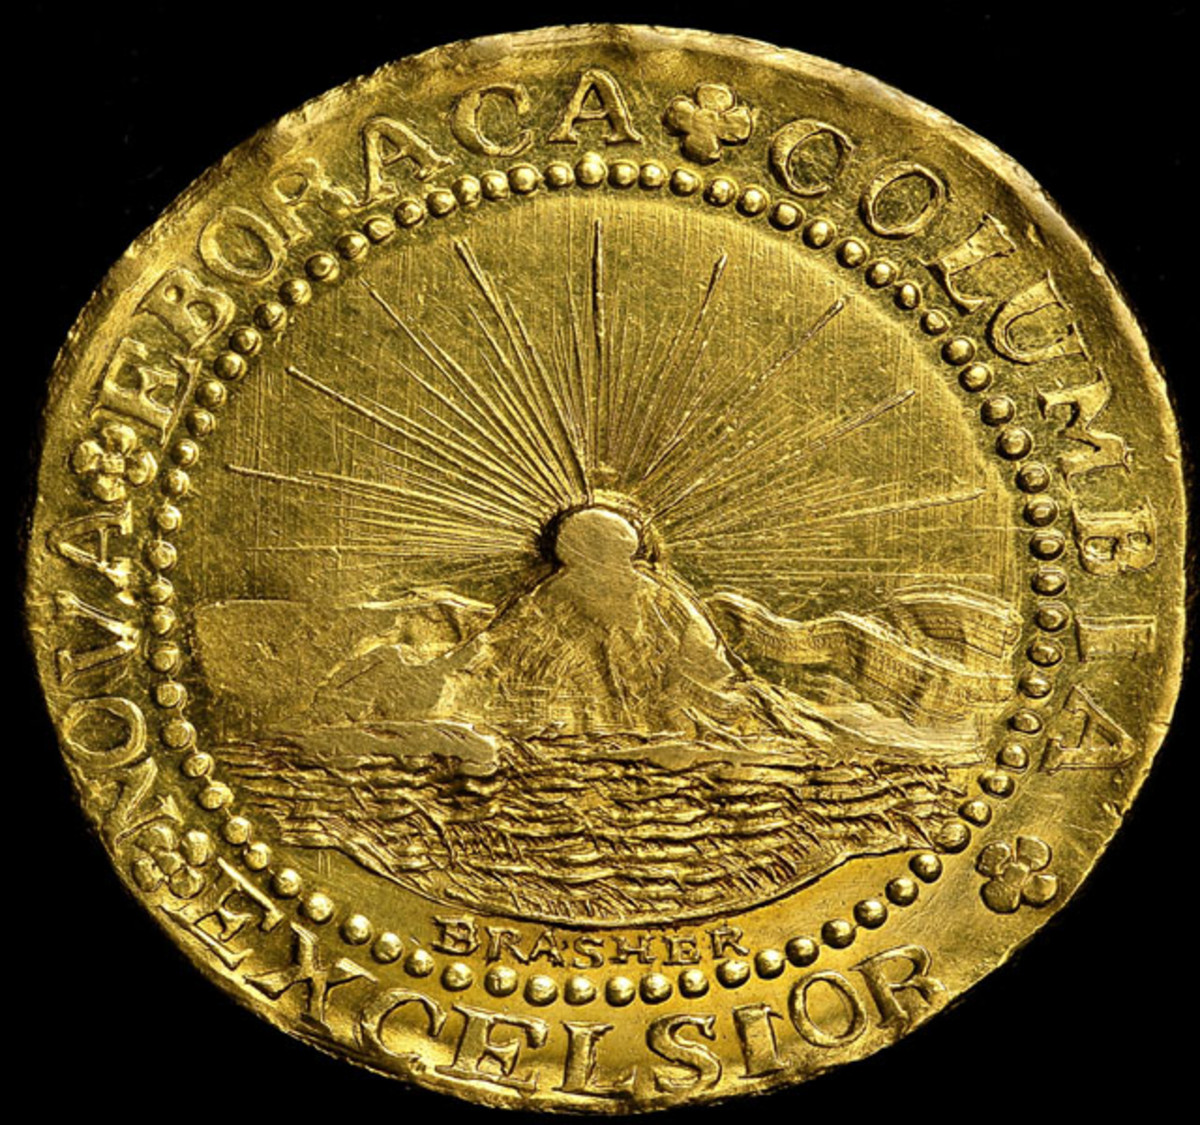 Reverse of the 1787 Brasher Doubloon